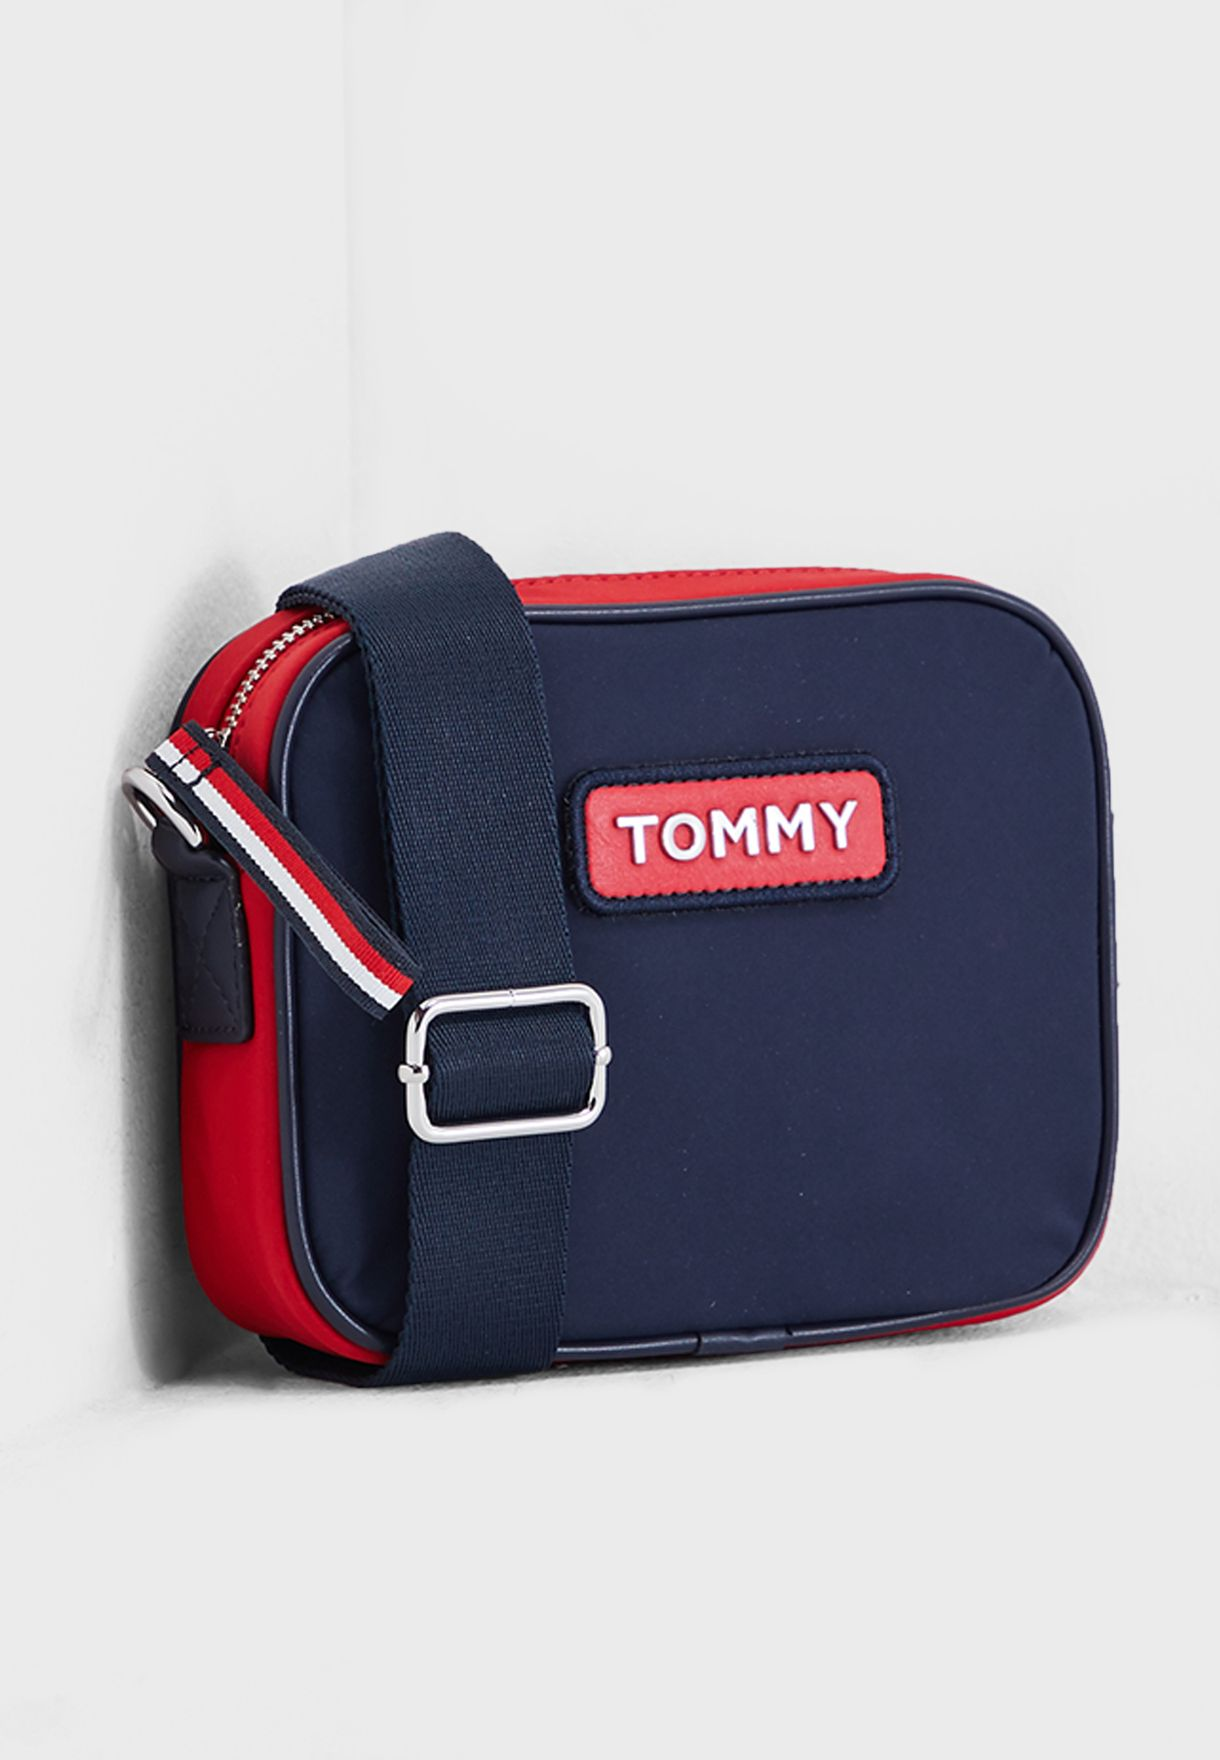 736225d2 Shop Tommy Hilfiger navy Varsity Crossover Bag AW0AW06296901 for ...